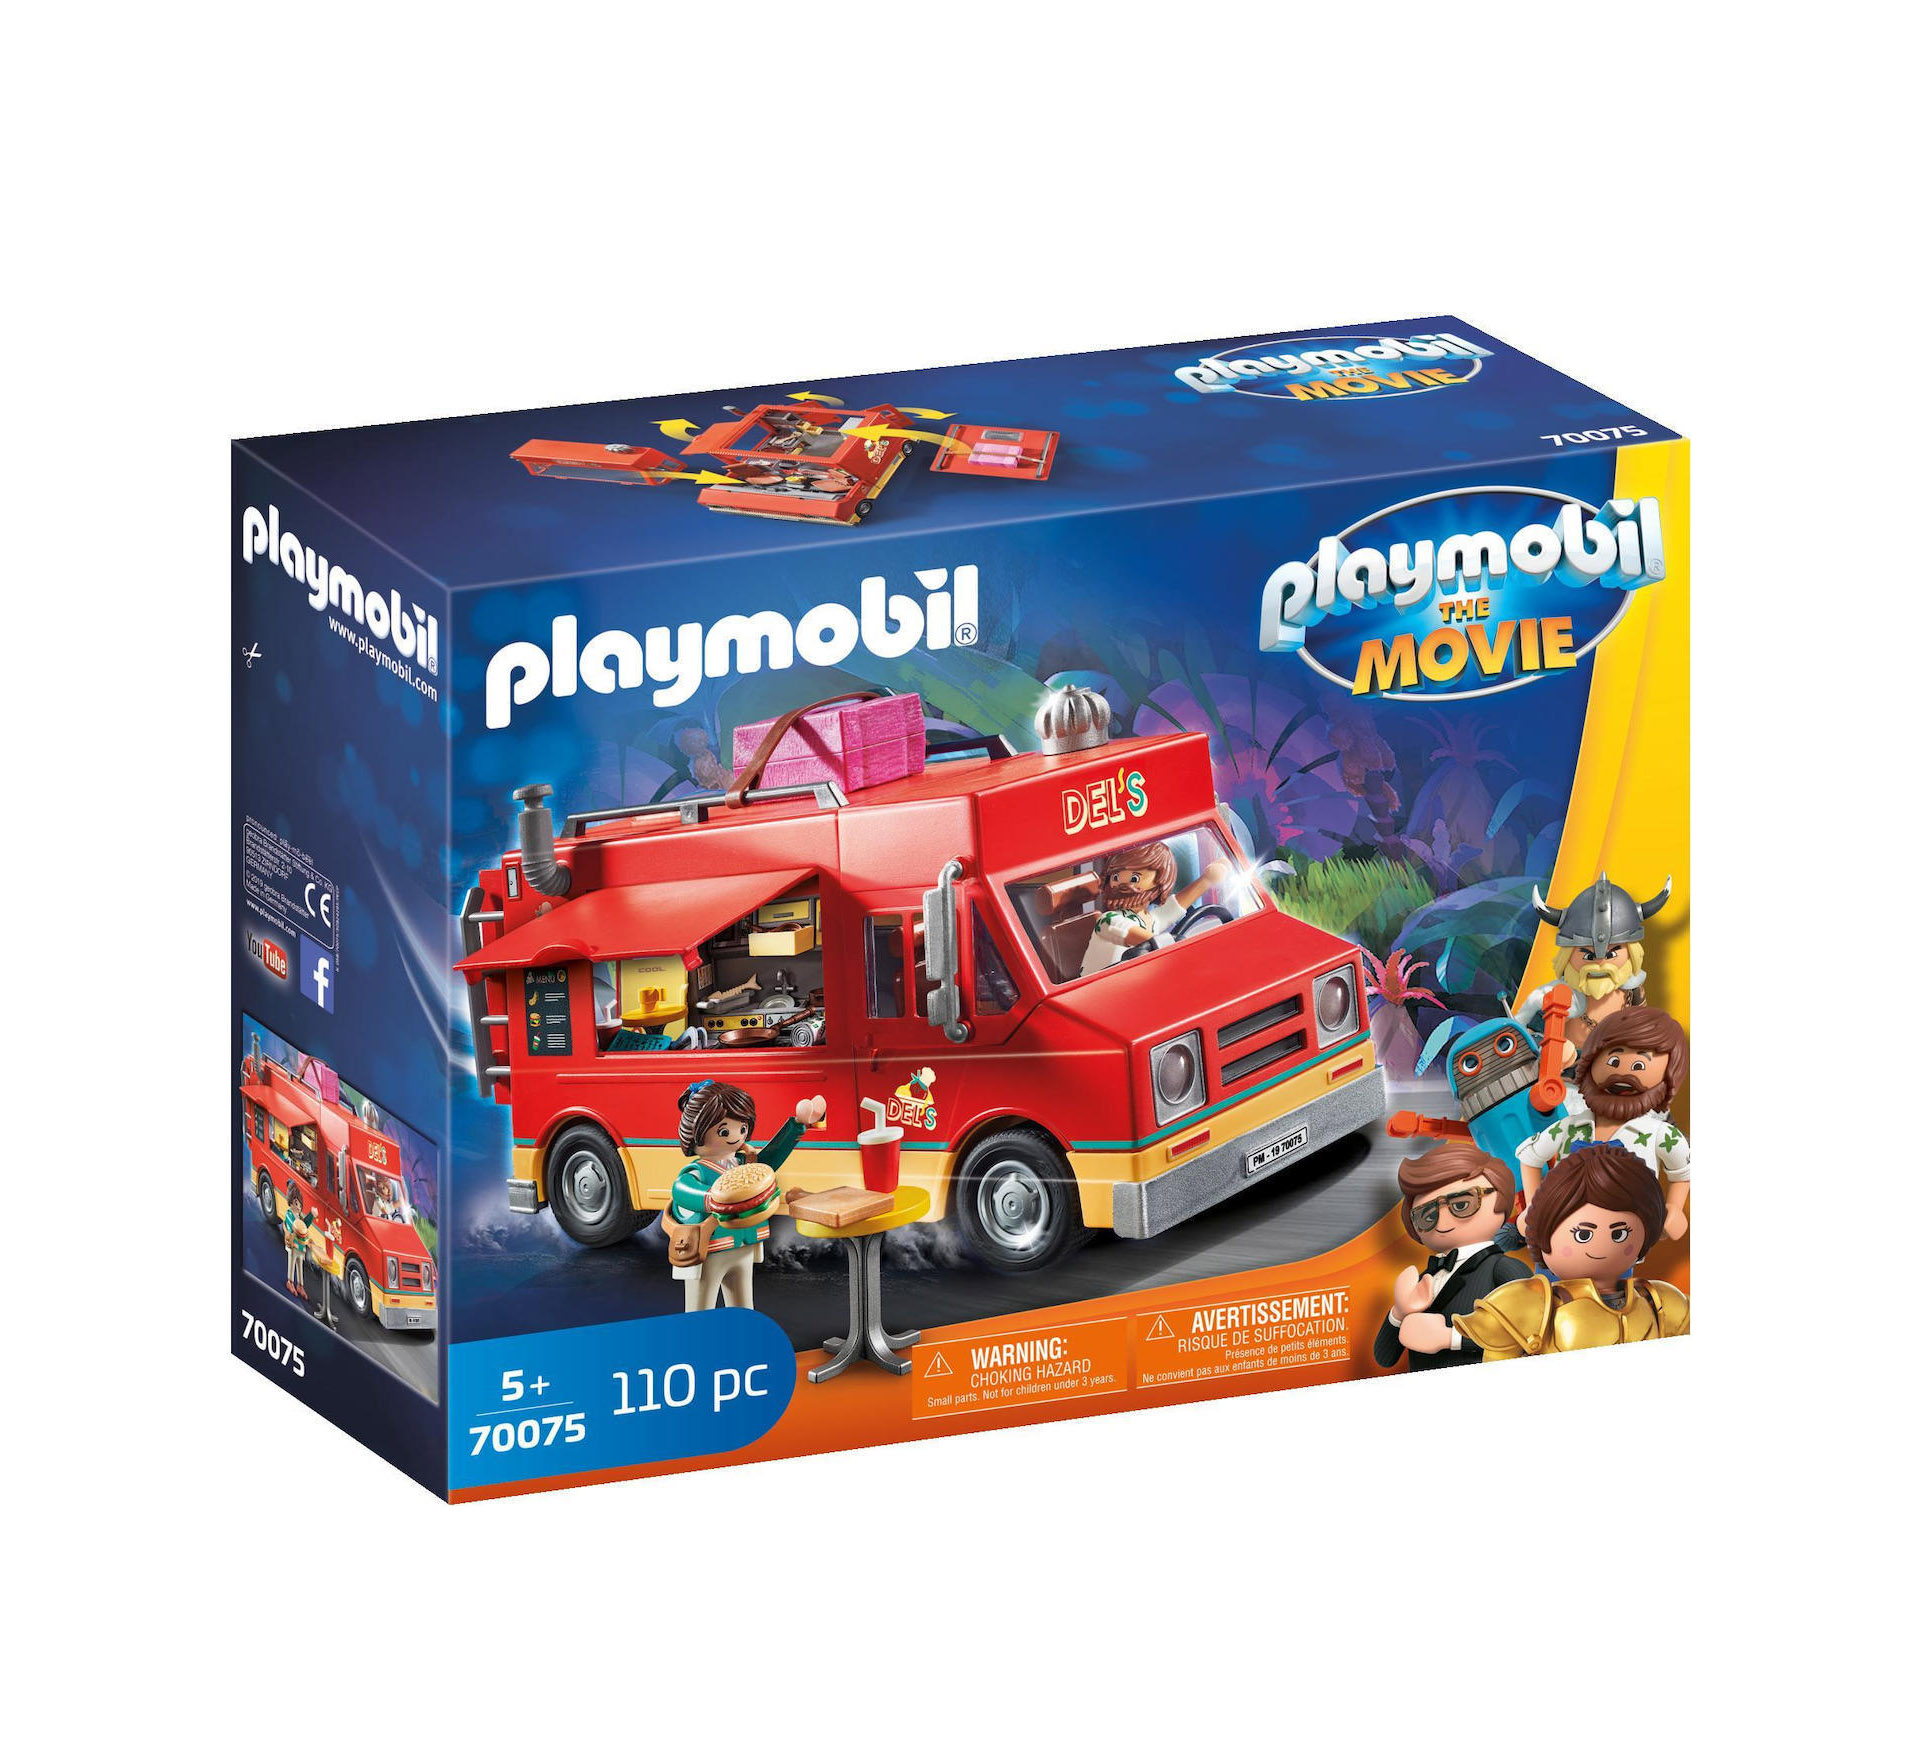 Playmobil The Movie: Del's Food Truck 70075